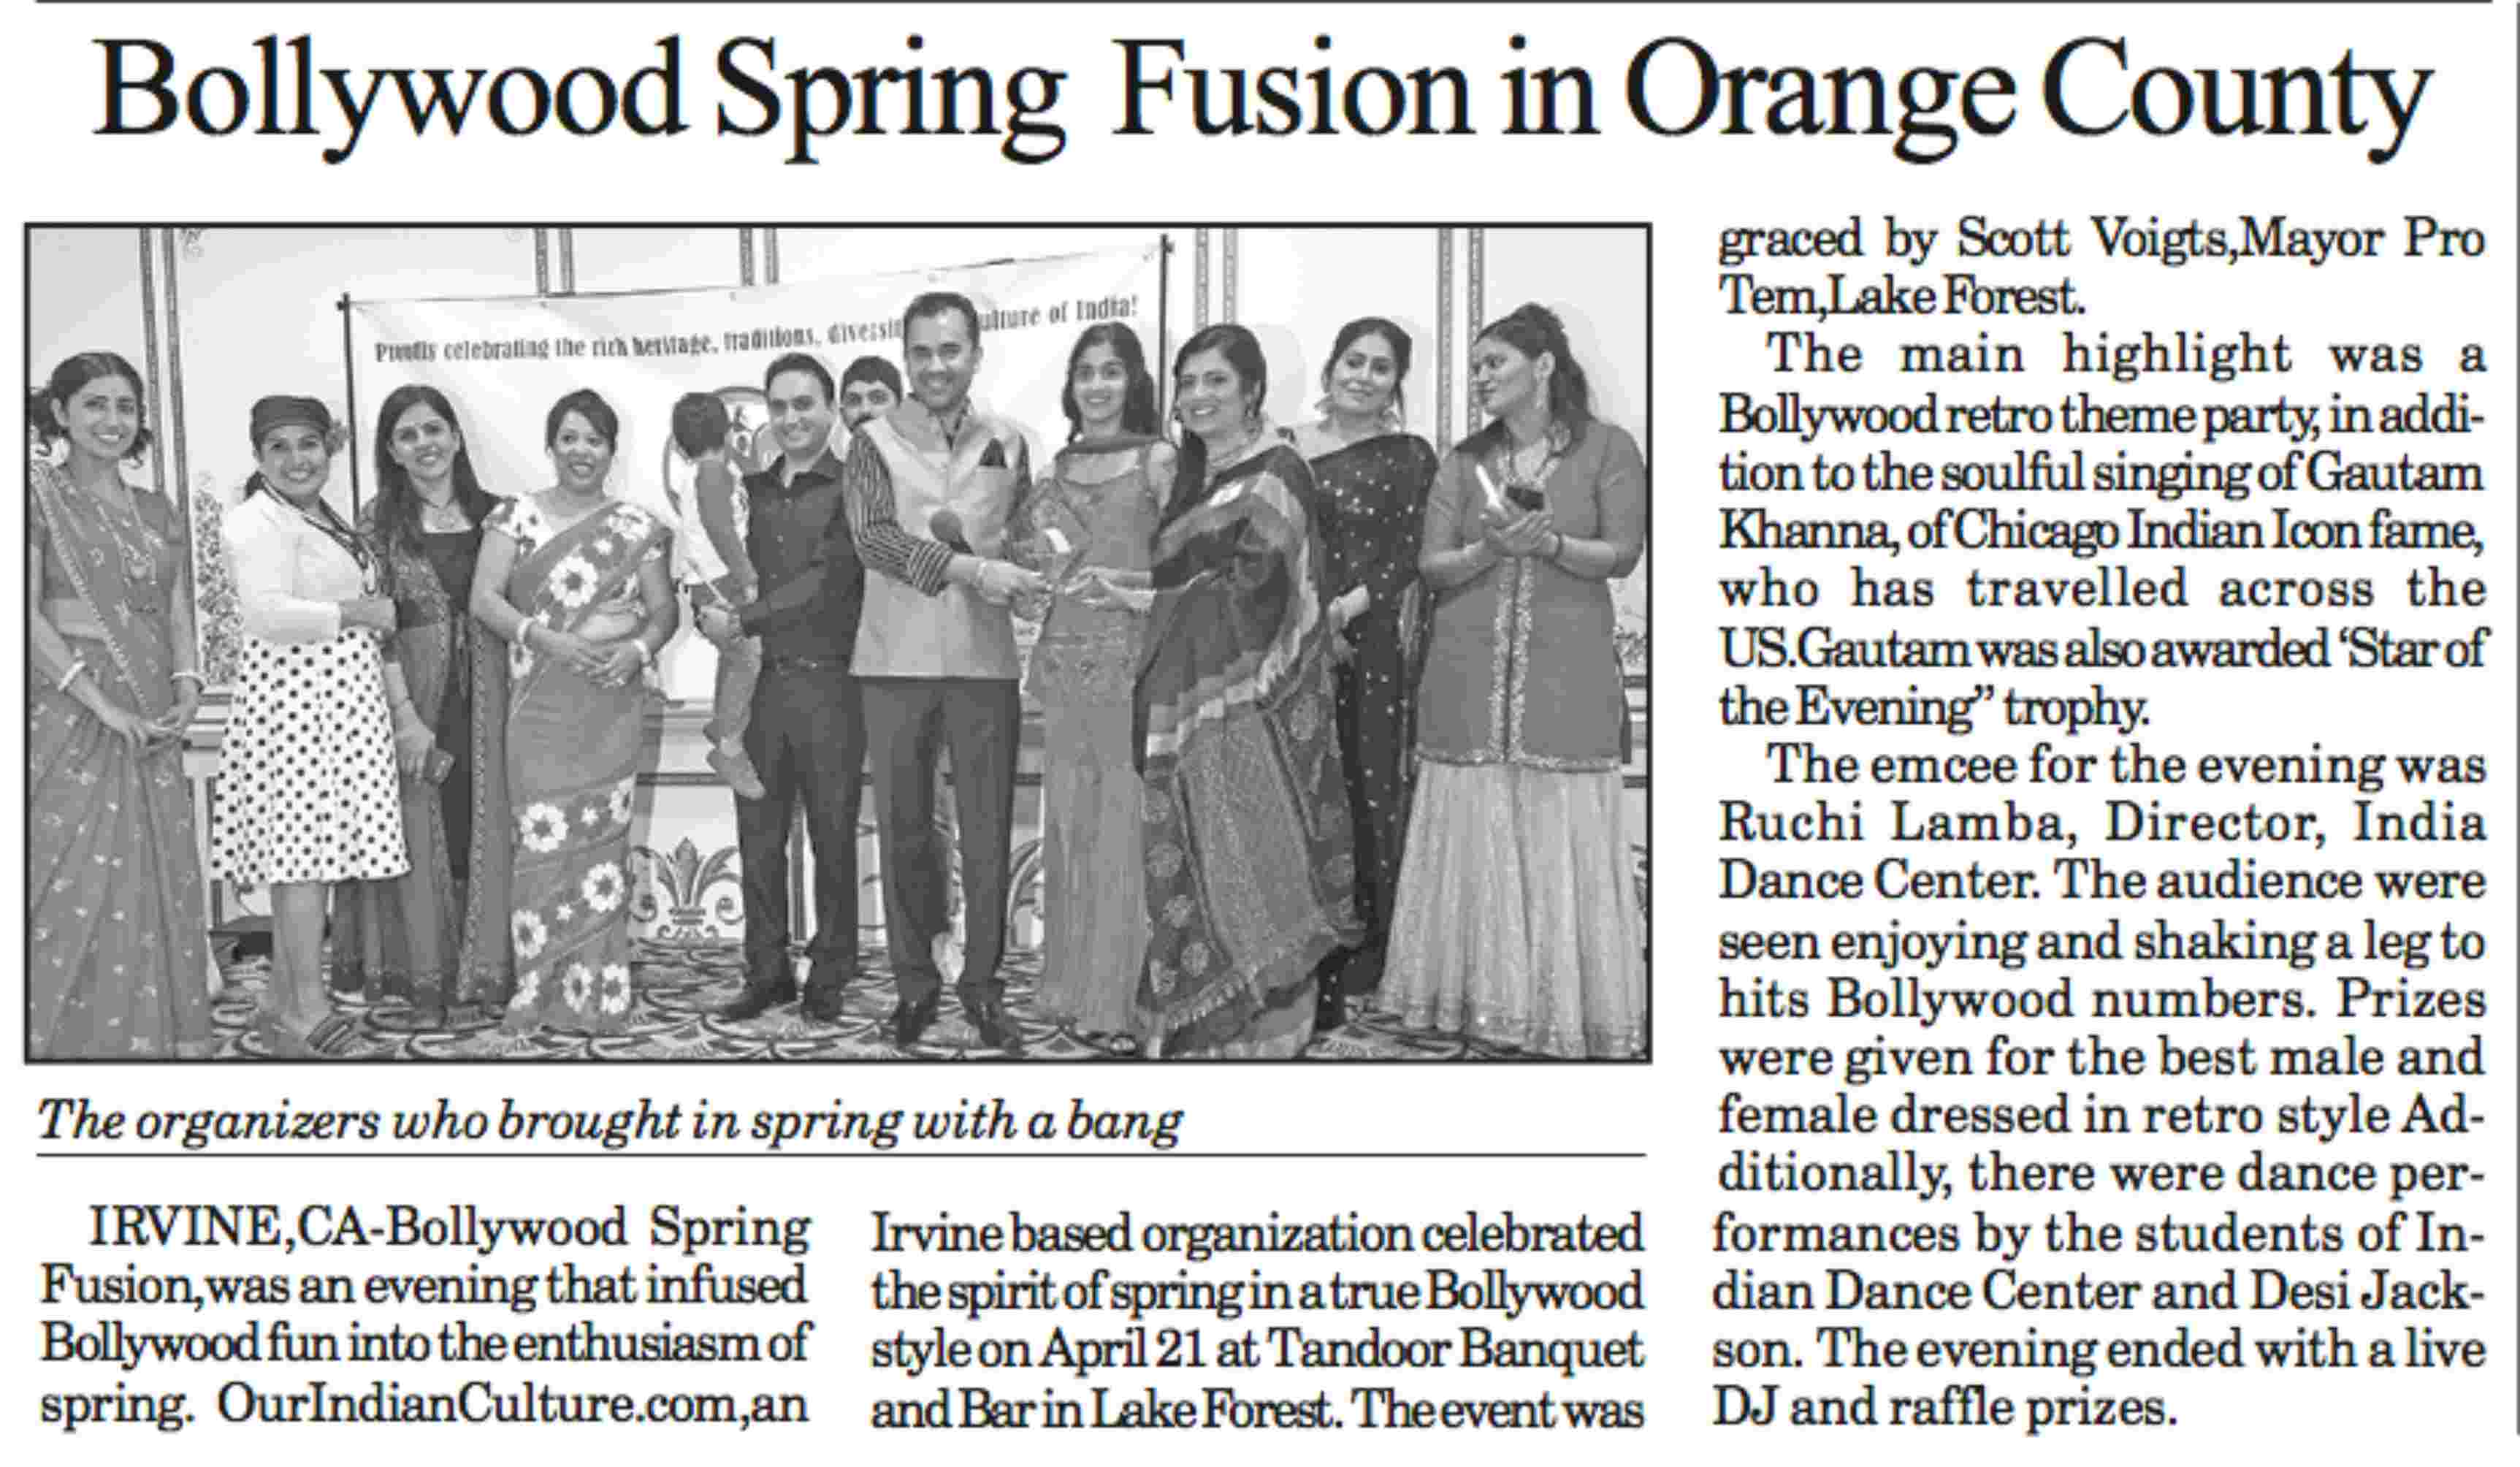 IndiaJournal_Media_Coverage_of_events_organized_by_OurIndianCulture_com